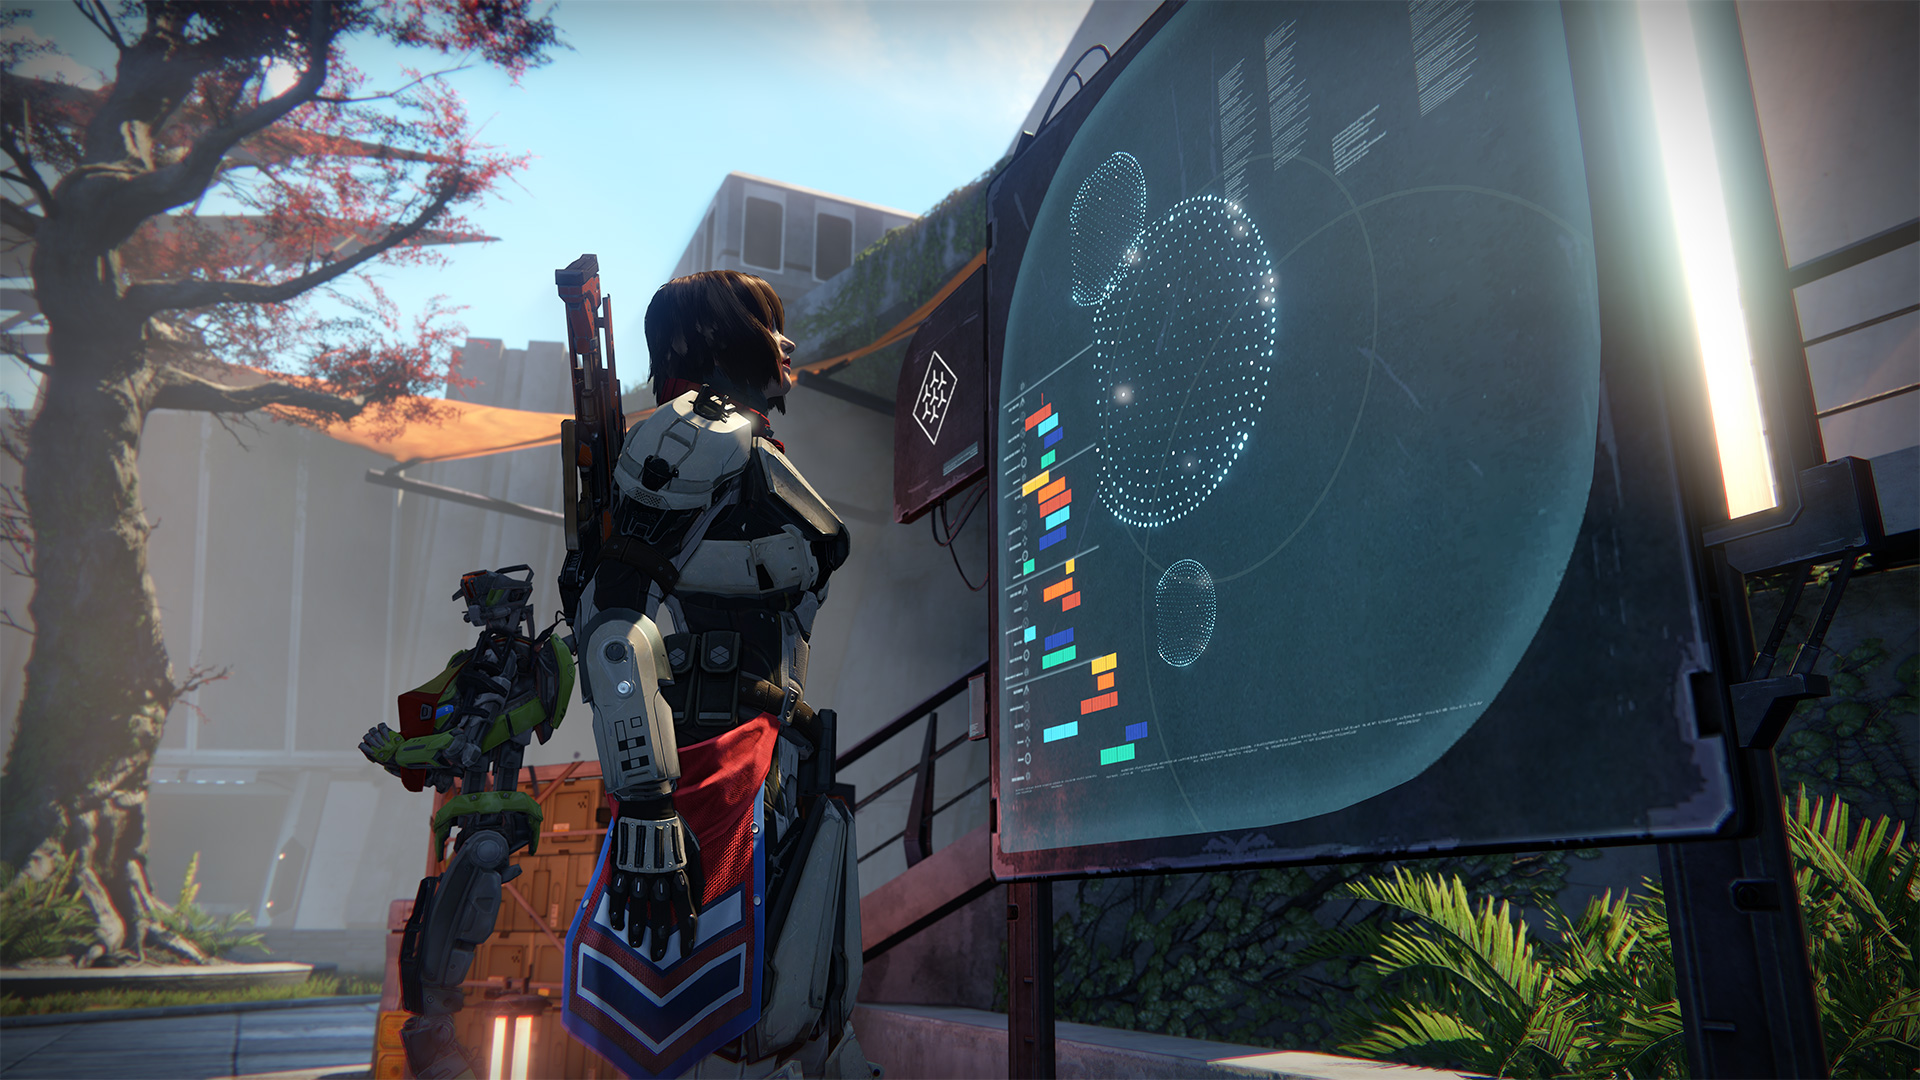 Destiny updated to 1.0.3 with 2.44 GB patch for voice chat, new bounty slots and more